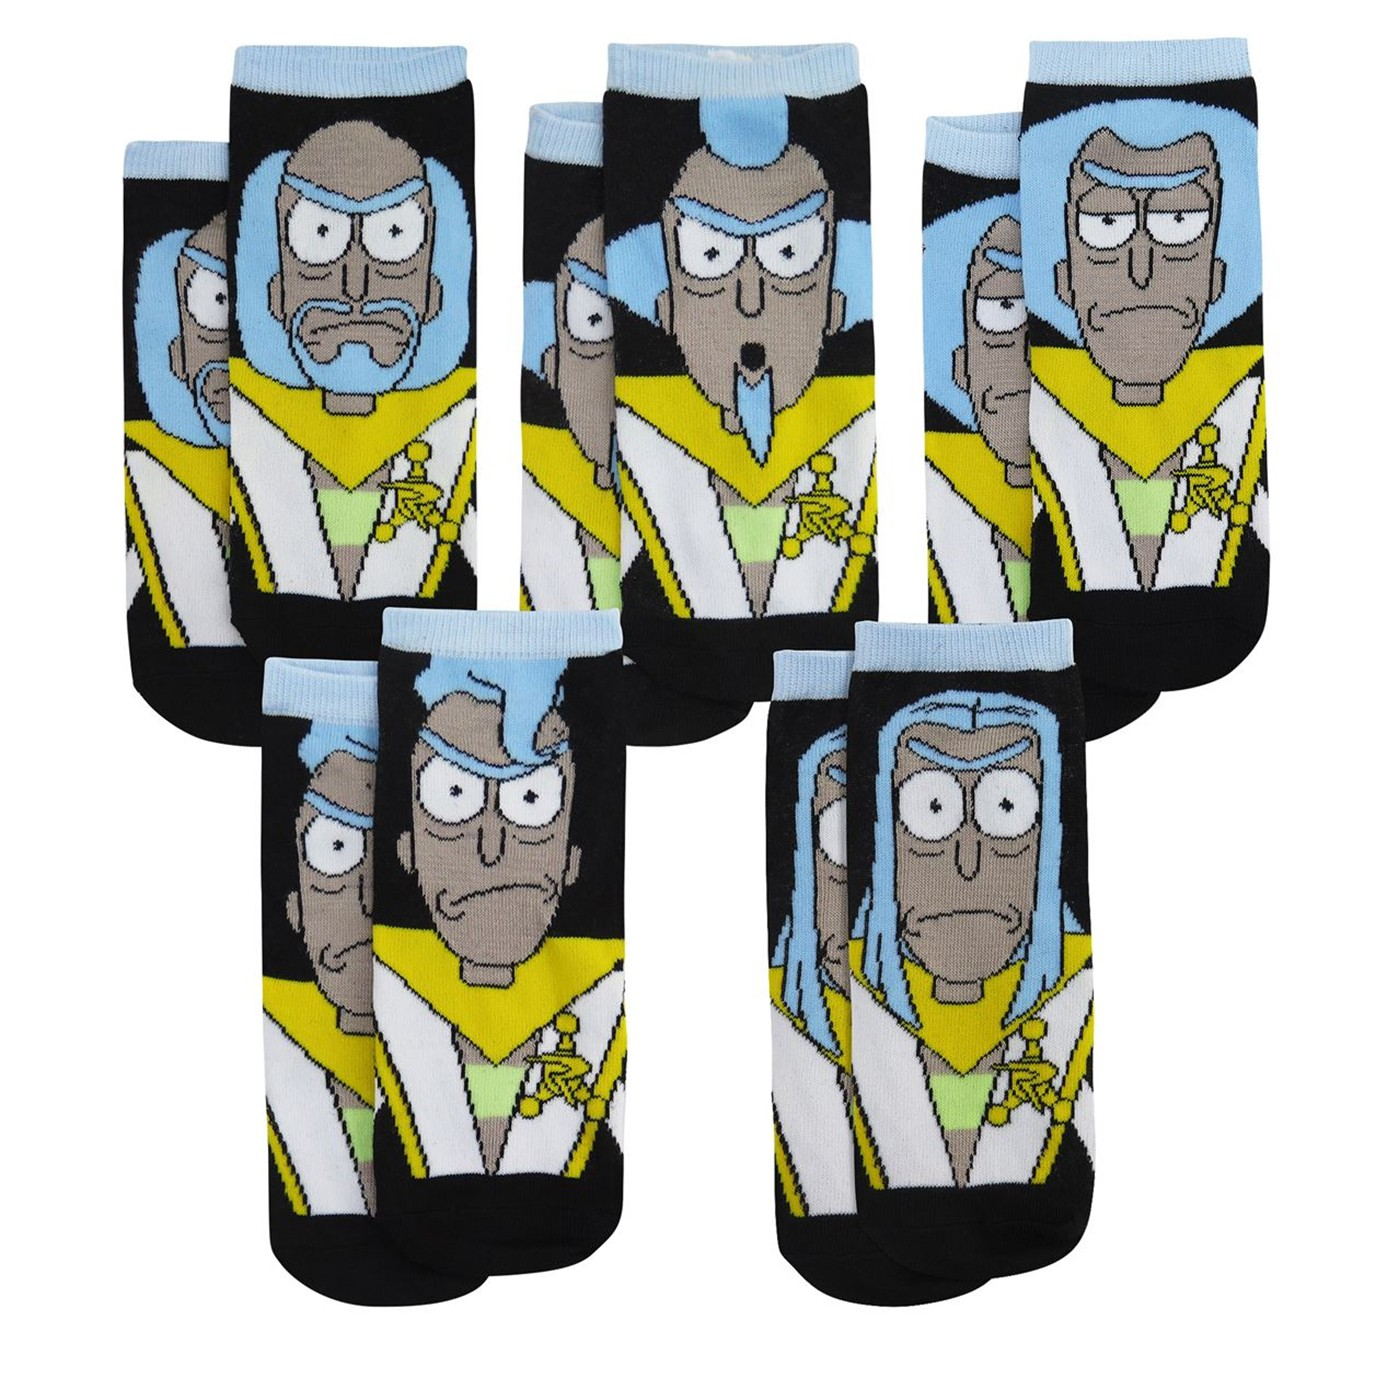 Rick and Morty Council of Ricks Low-Cut Socks 5-Pack